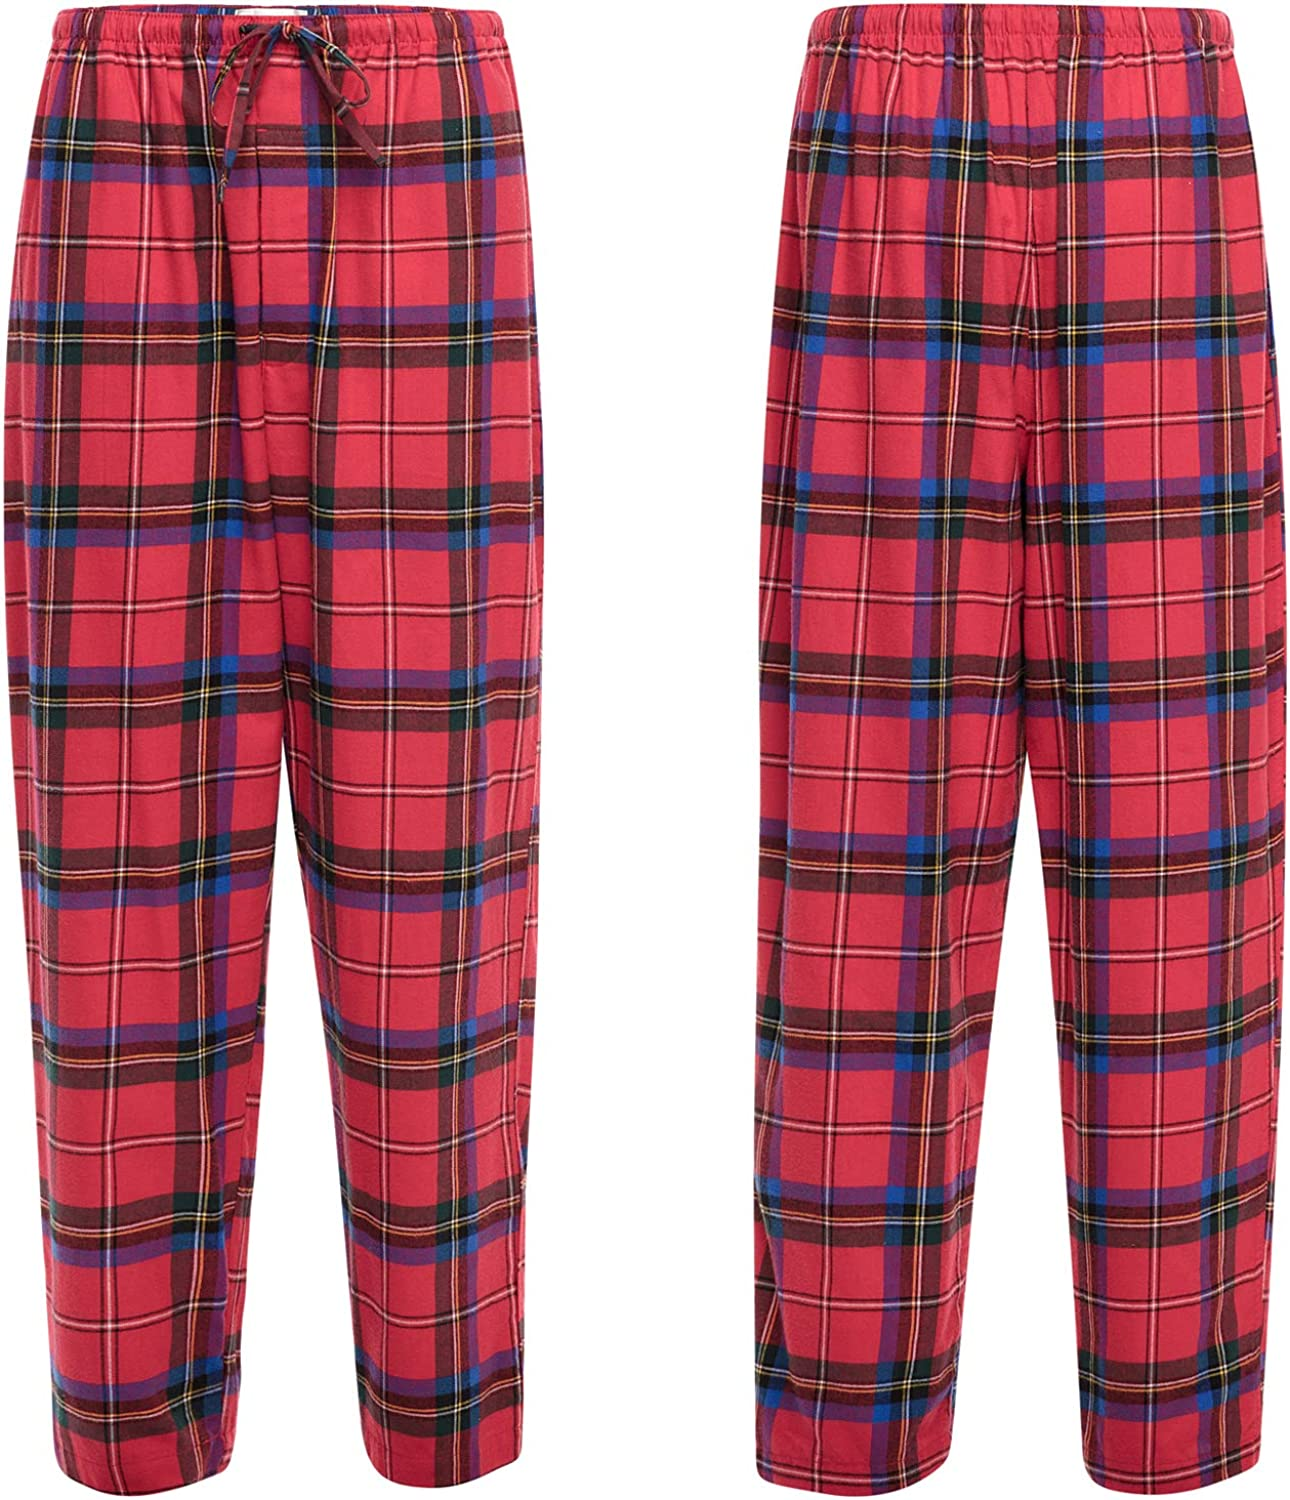 2X Christmas Camouflage Alexander Del Rossa Mens Warm Flannel Pajama Pants Long Cotton Pj Bottoms A0475N262X